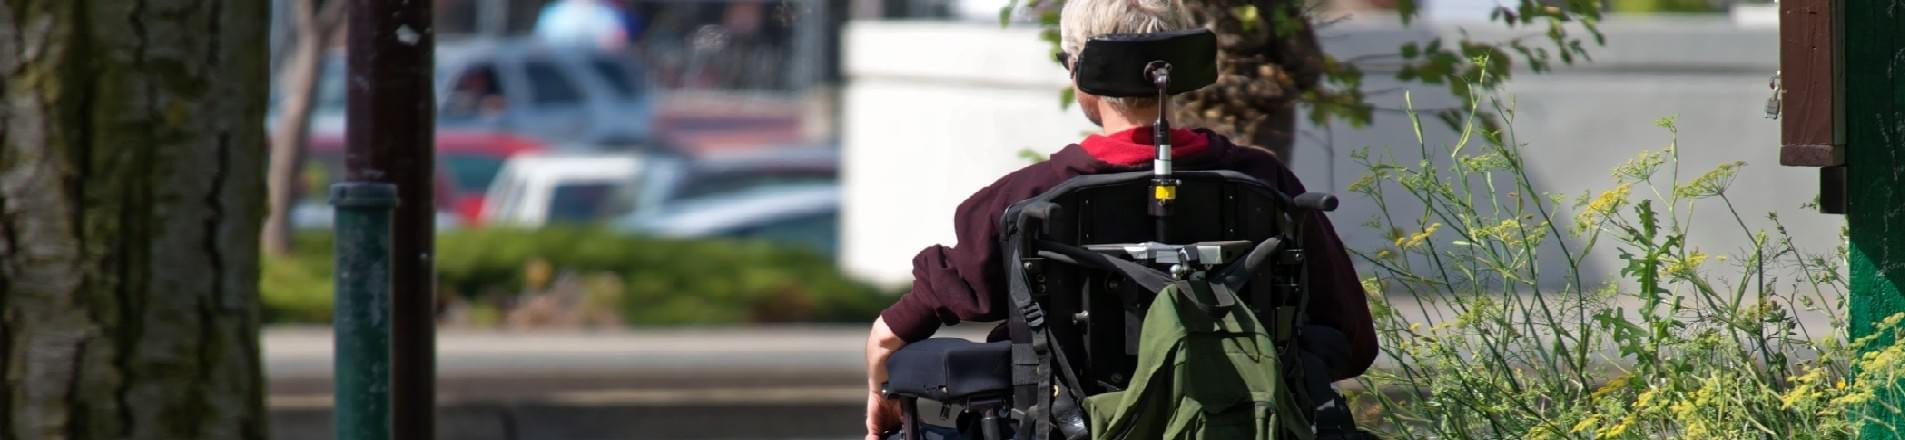 Pledge made to help people with a disability find work